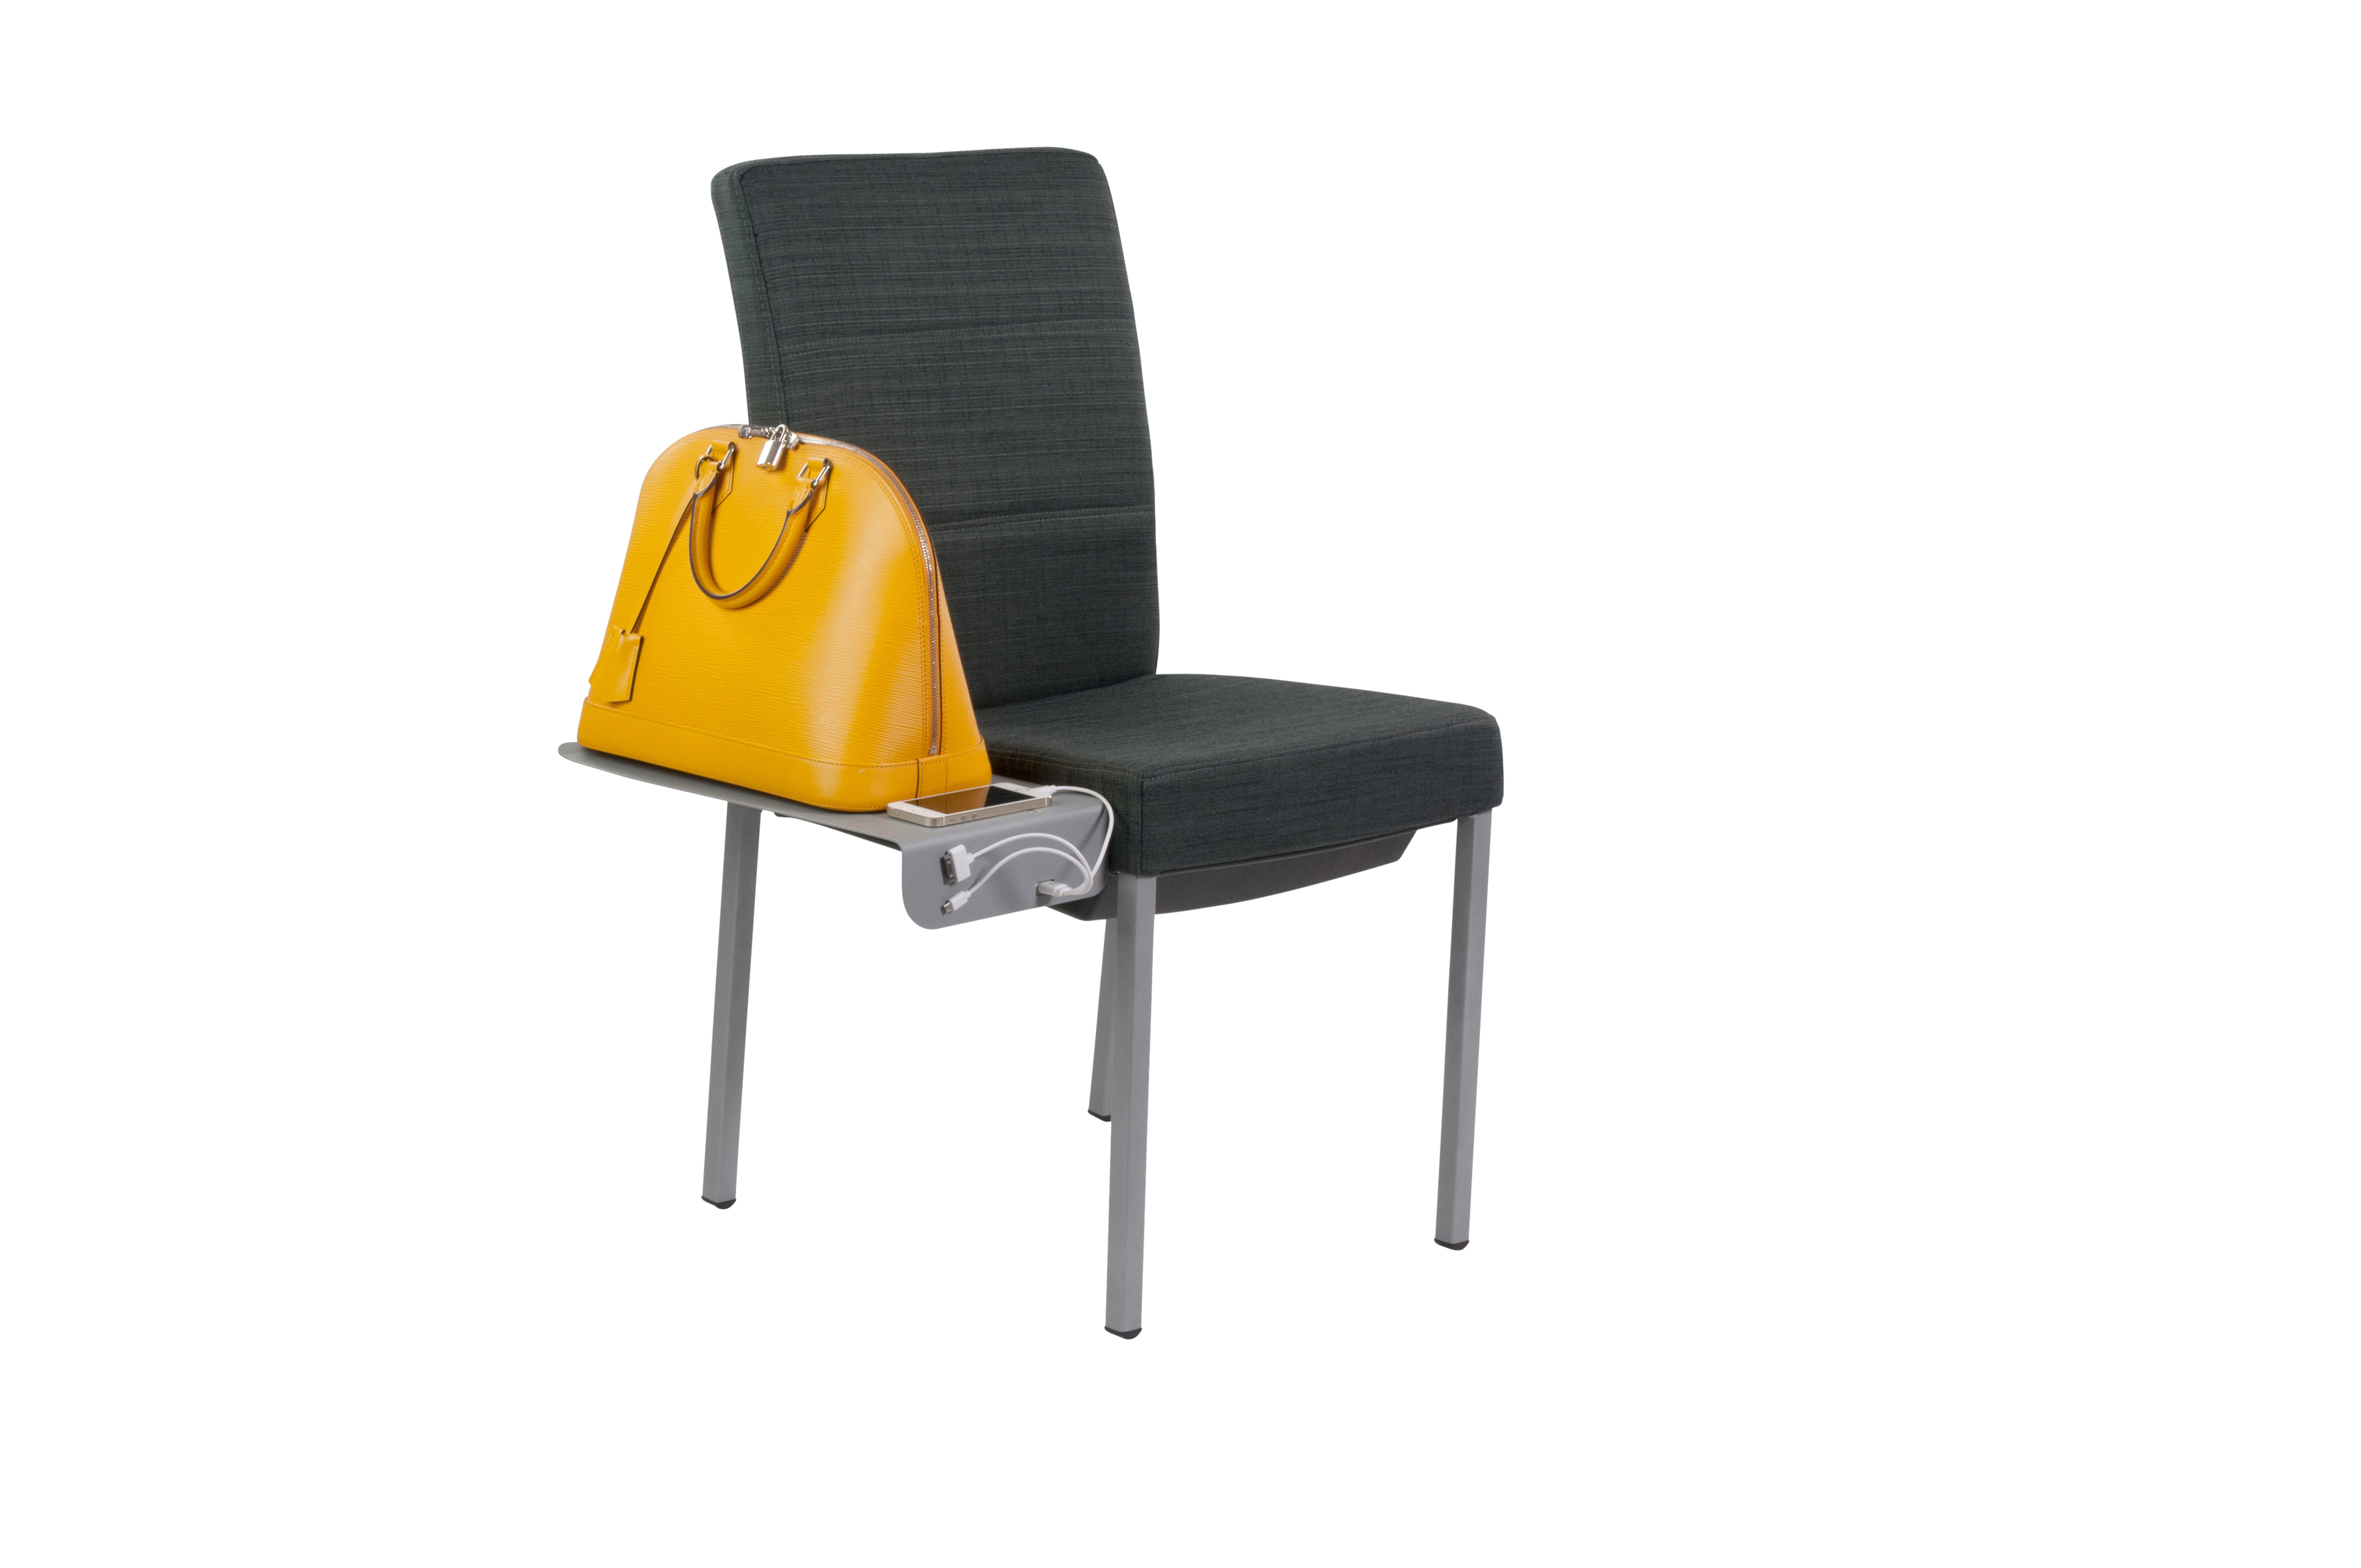 Kube Systems to Showcase Innovative Banquet Chair with Mobile